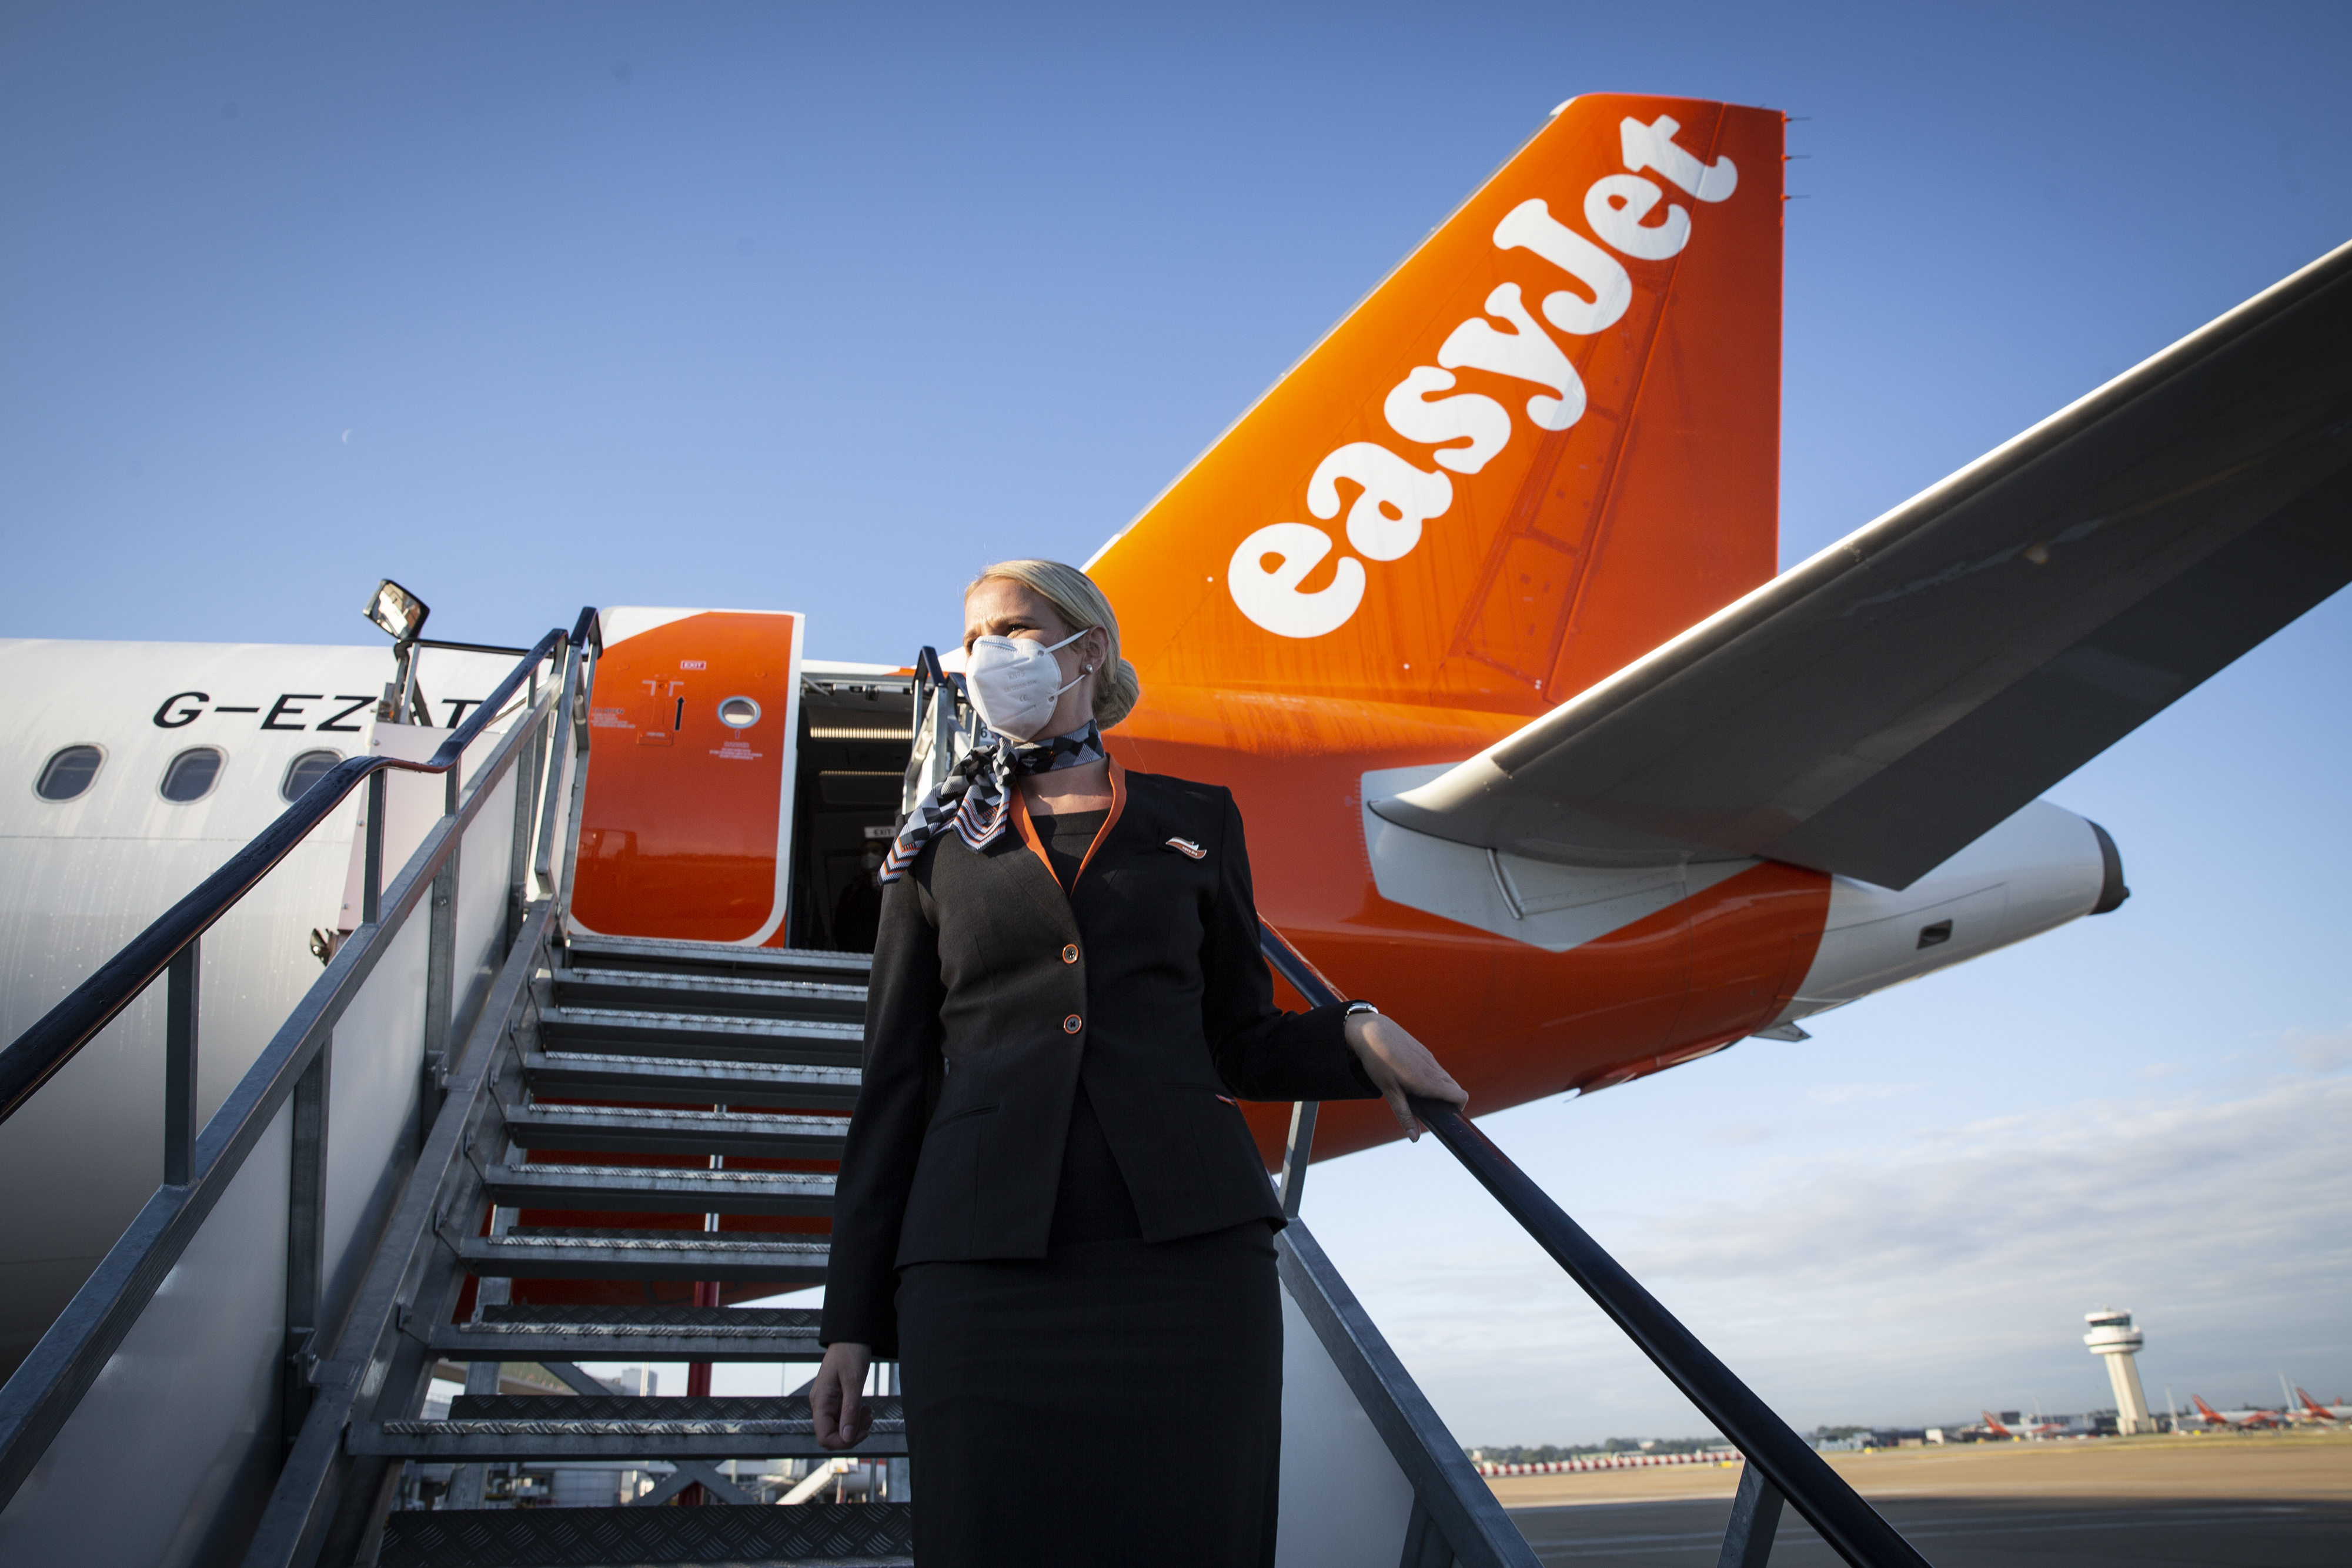 Easyjet cabin crew workers are set to train up as vaccinators to help with the coronavirus vaccine roll-out